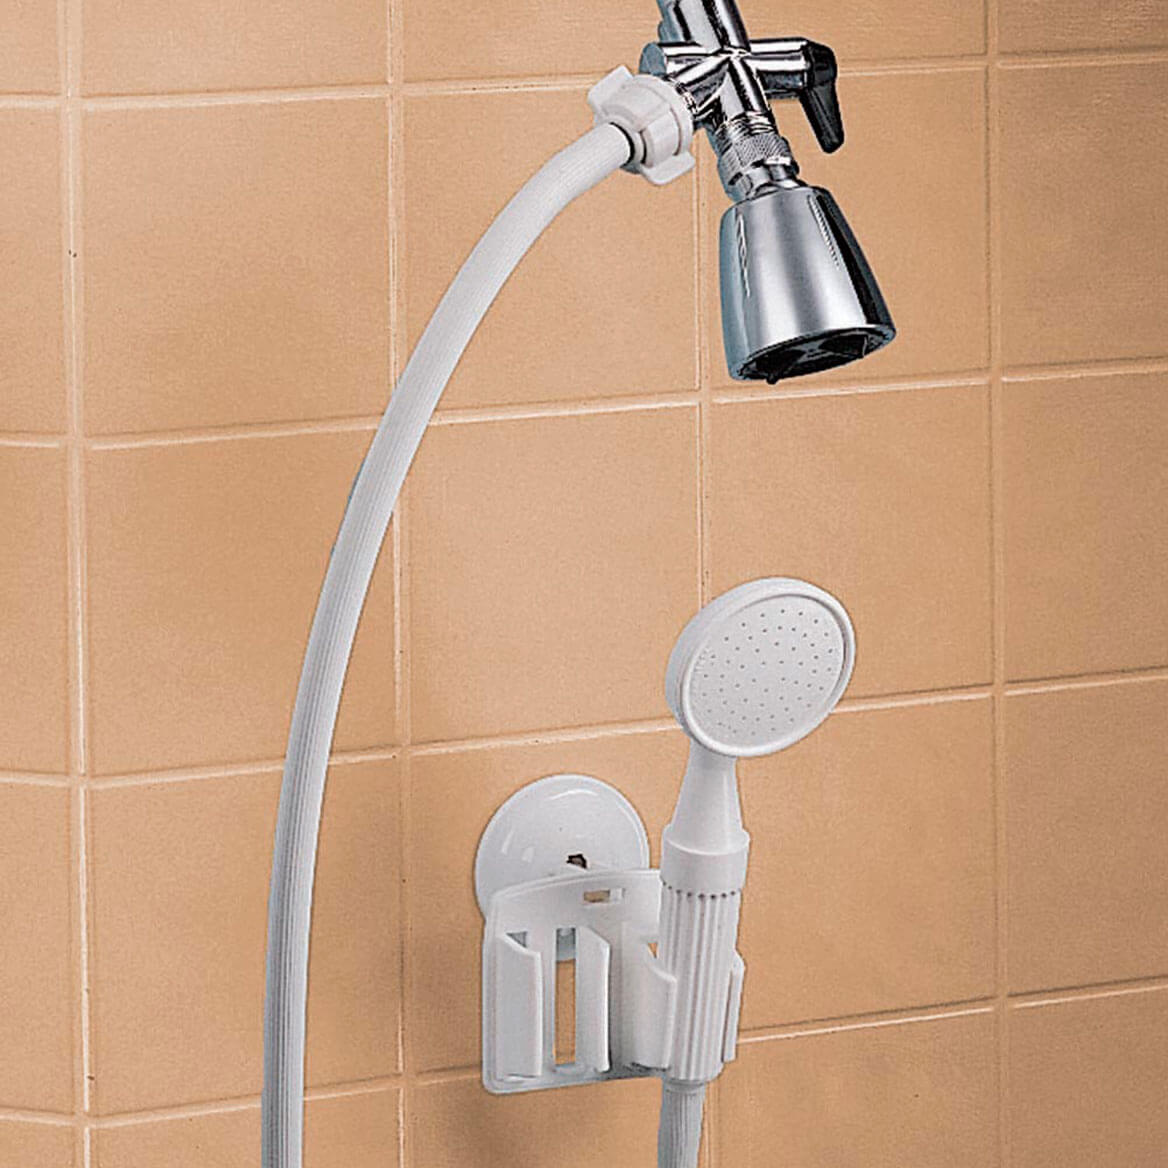 Detachable Hand-Held Shower Sprayer-304556